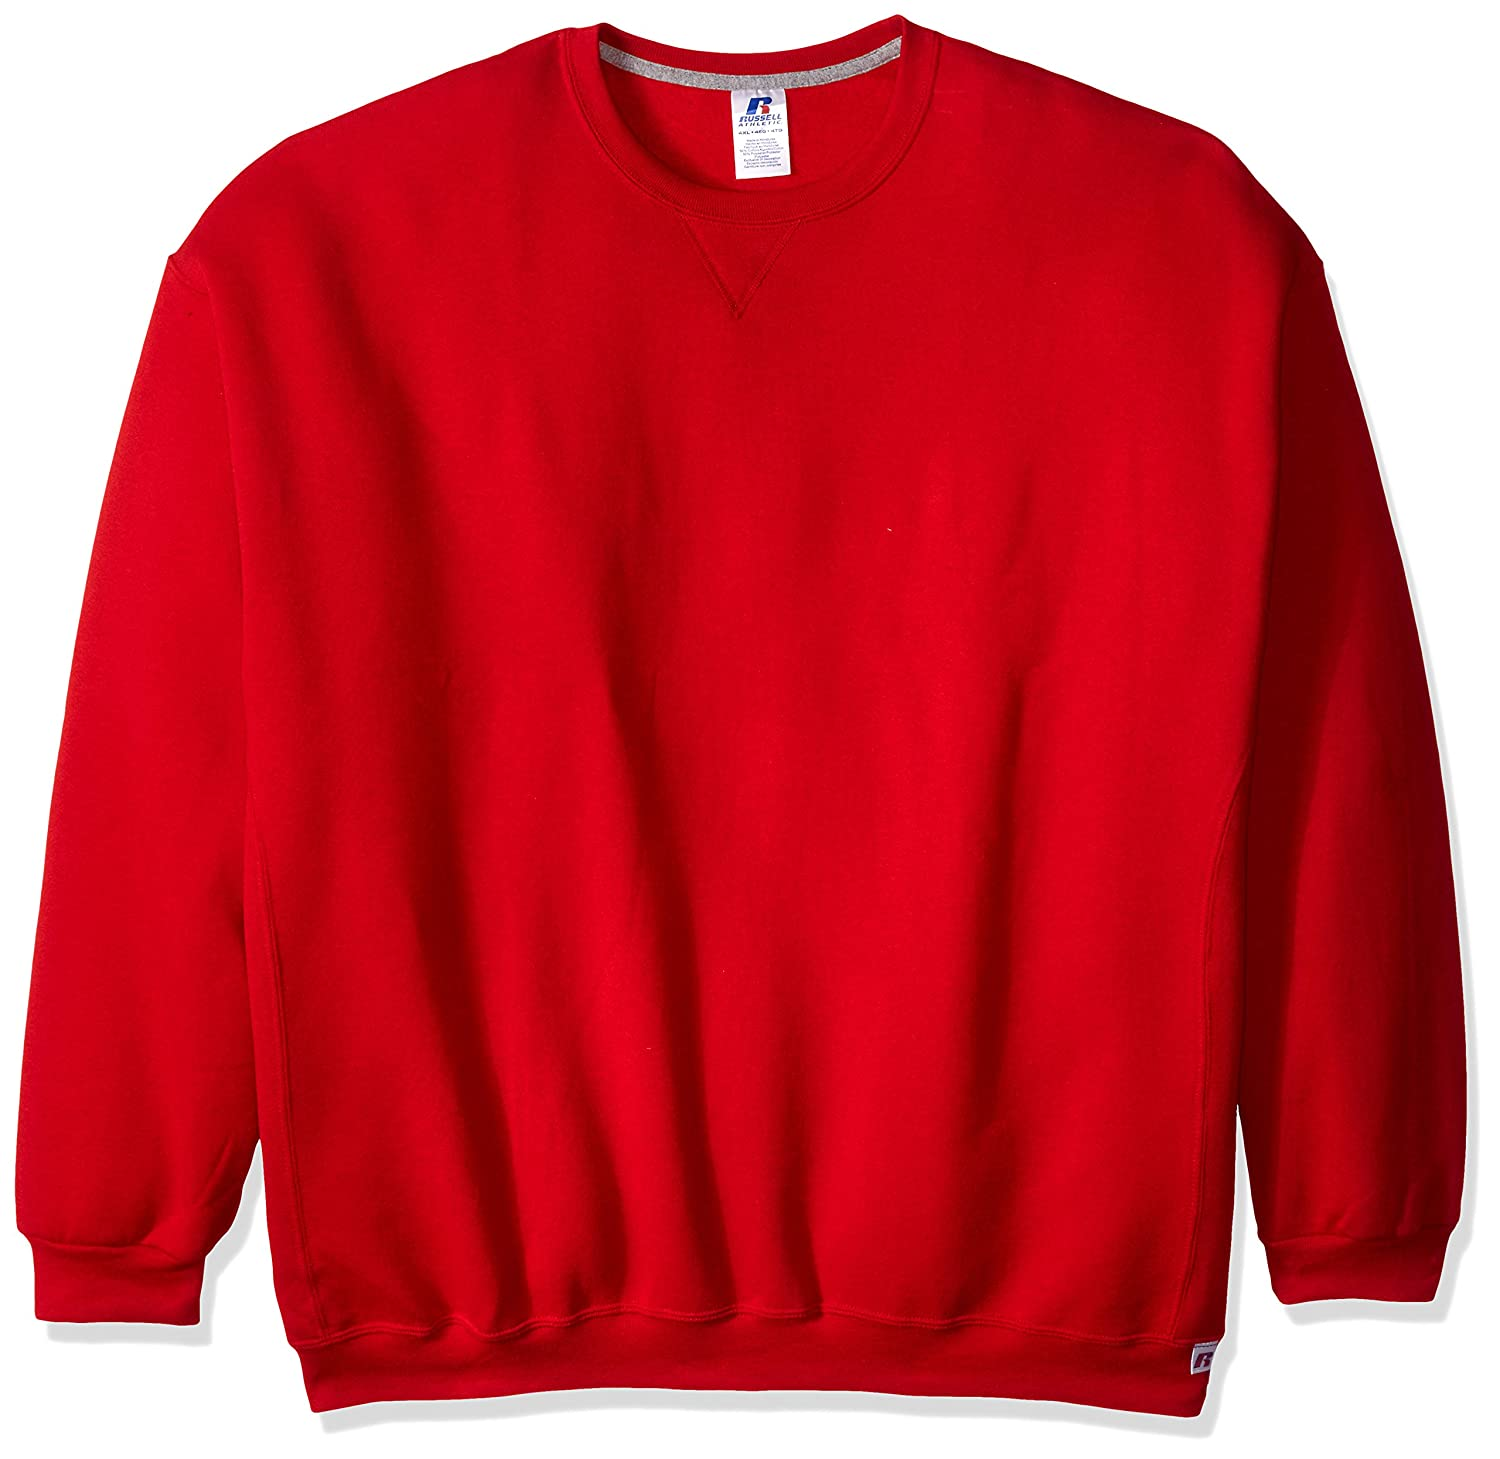 44af26cac Russell Athletic Men's Dri Power Fleece Crewneck Sweatshirt, True Red,  4X-Large: Amazon.in: Clothing & Accessories